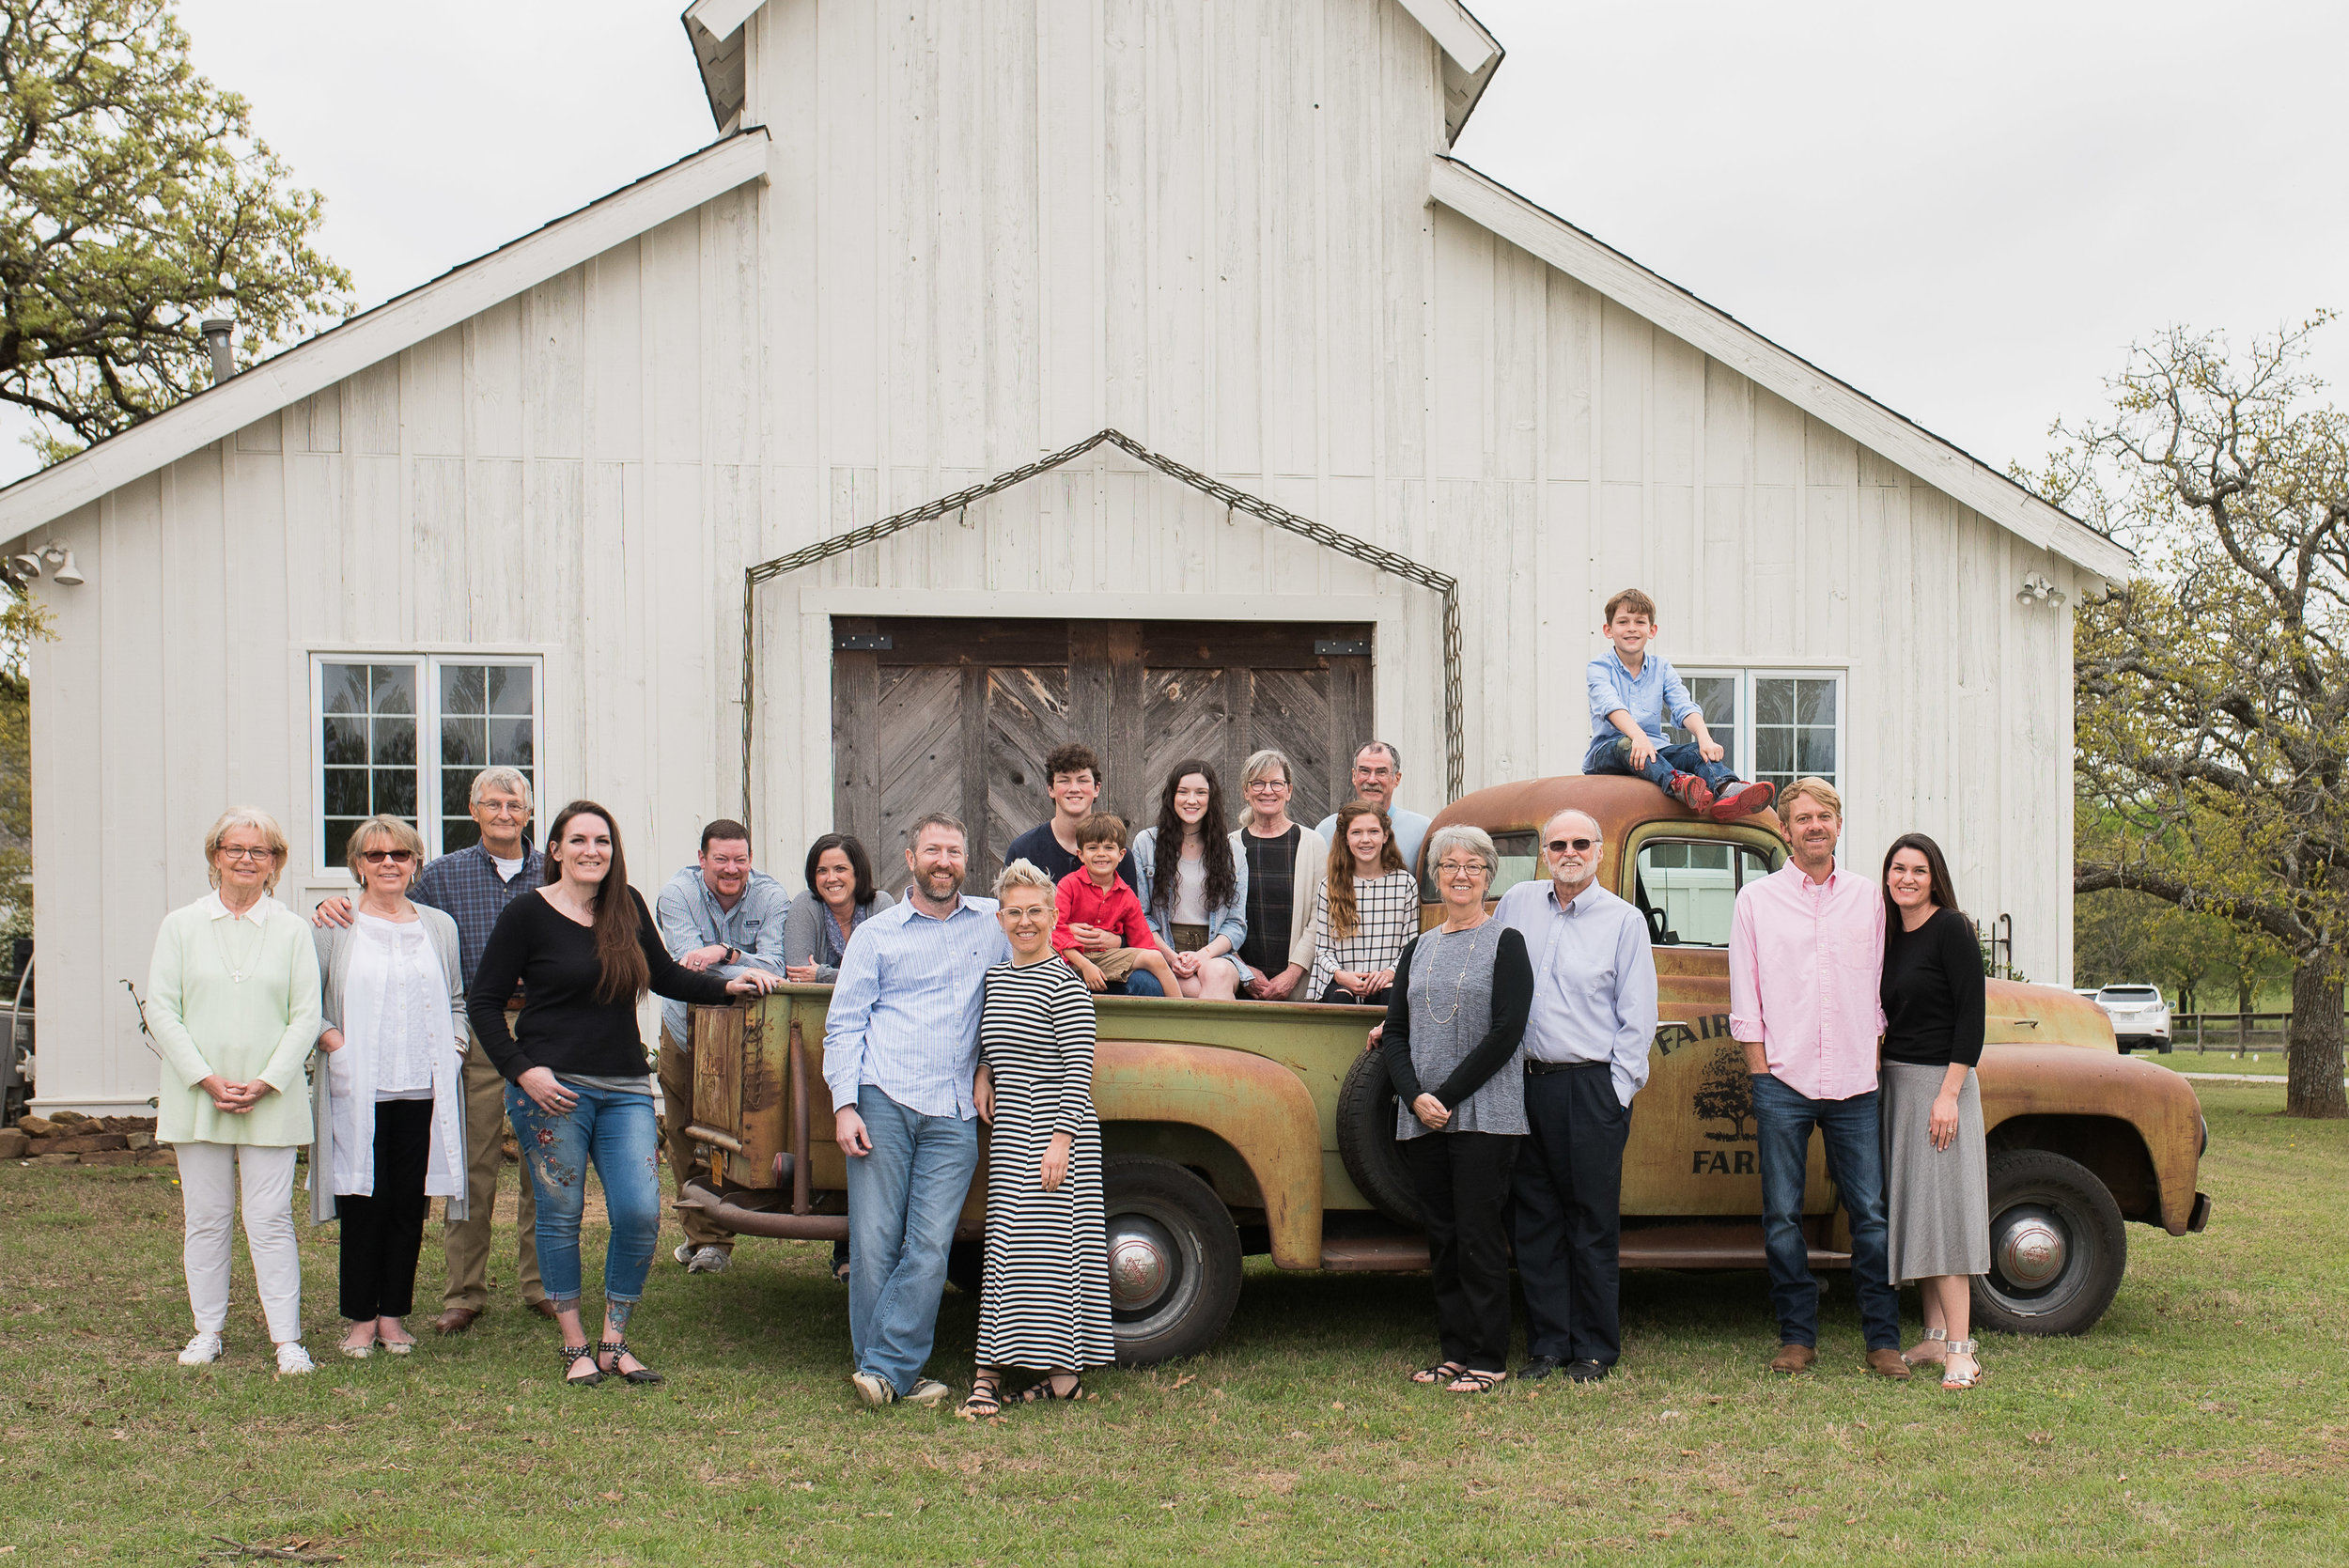 This year's Easter family photo involved one less broken toe, but the photographer still needs to work on her Self Timer skills. At least this is a patient group.